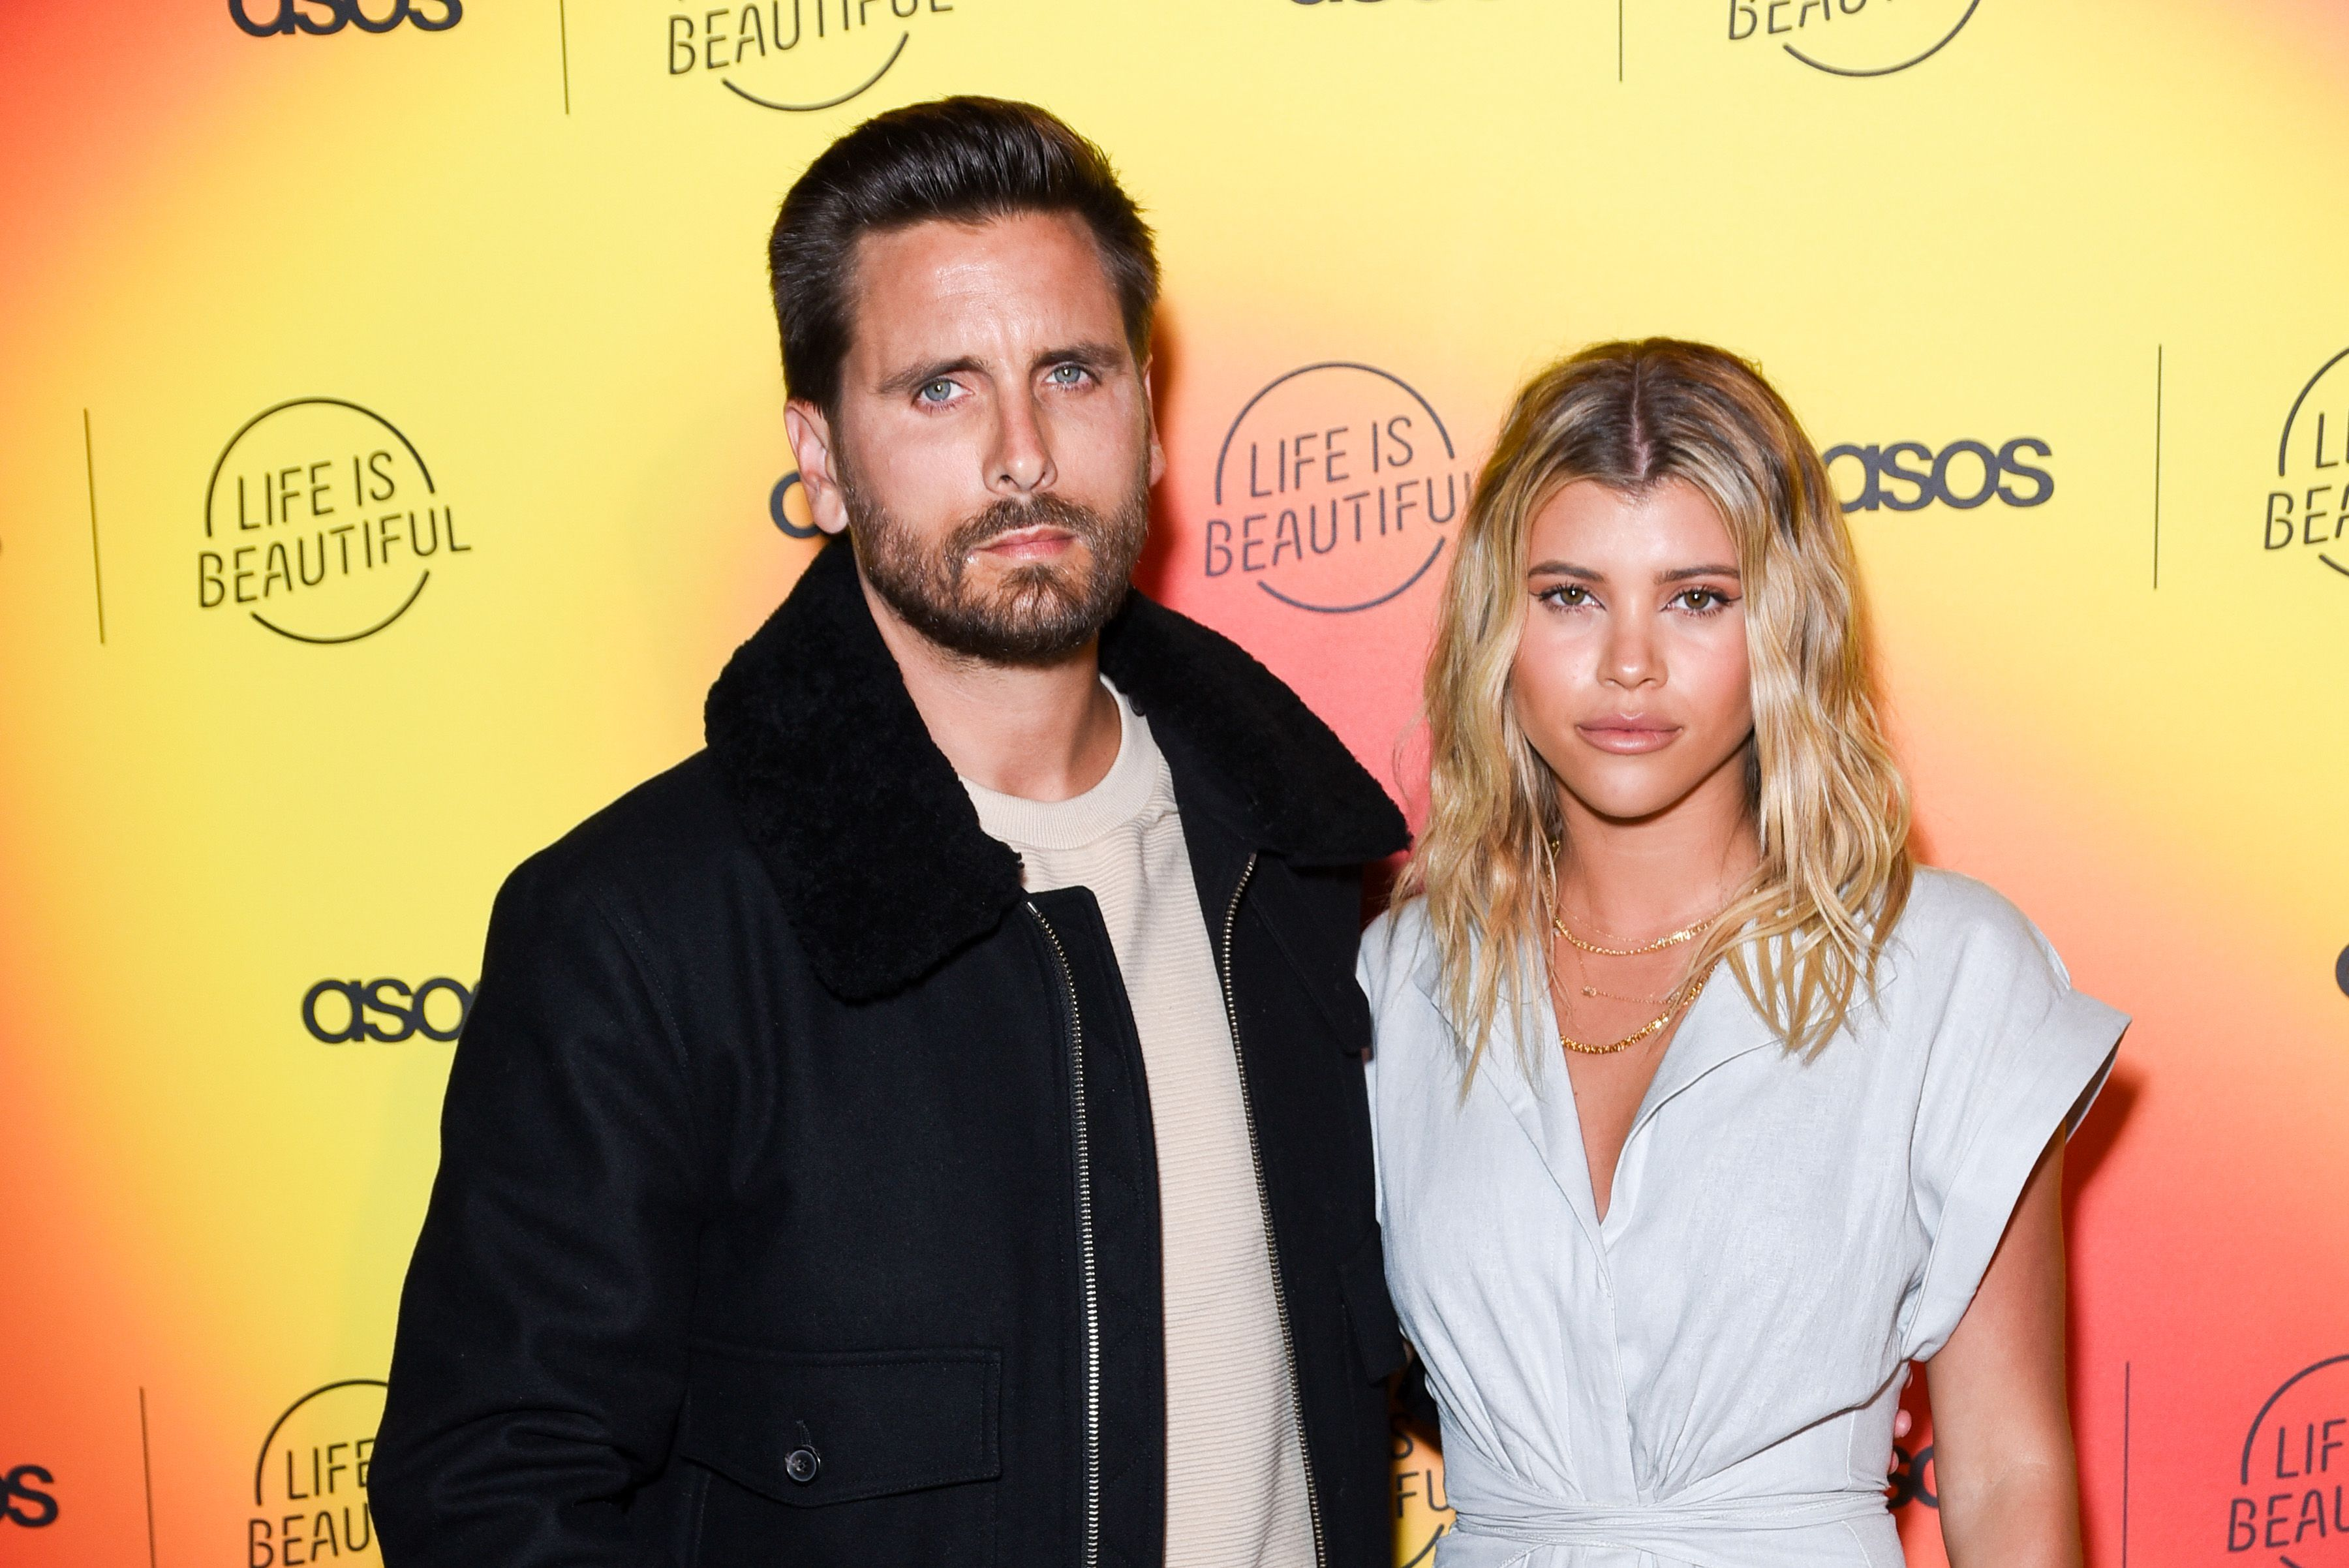 Scott Disick and Sofia Richie at a Life Is Beautiful event in 2019 in Los Angeles | Source: Getty Images